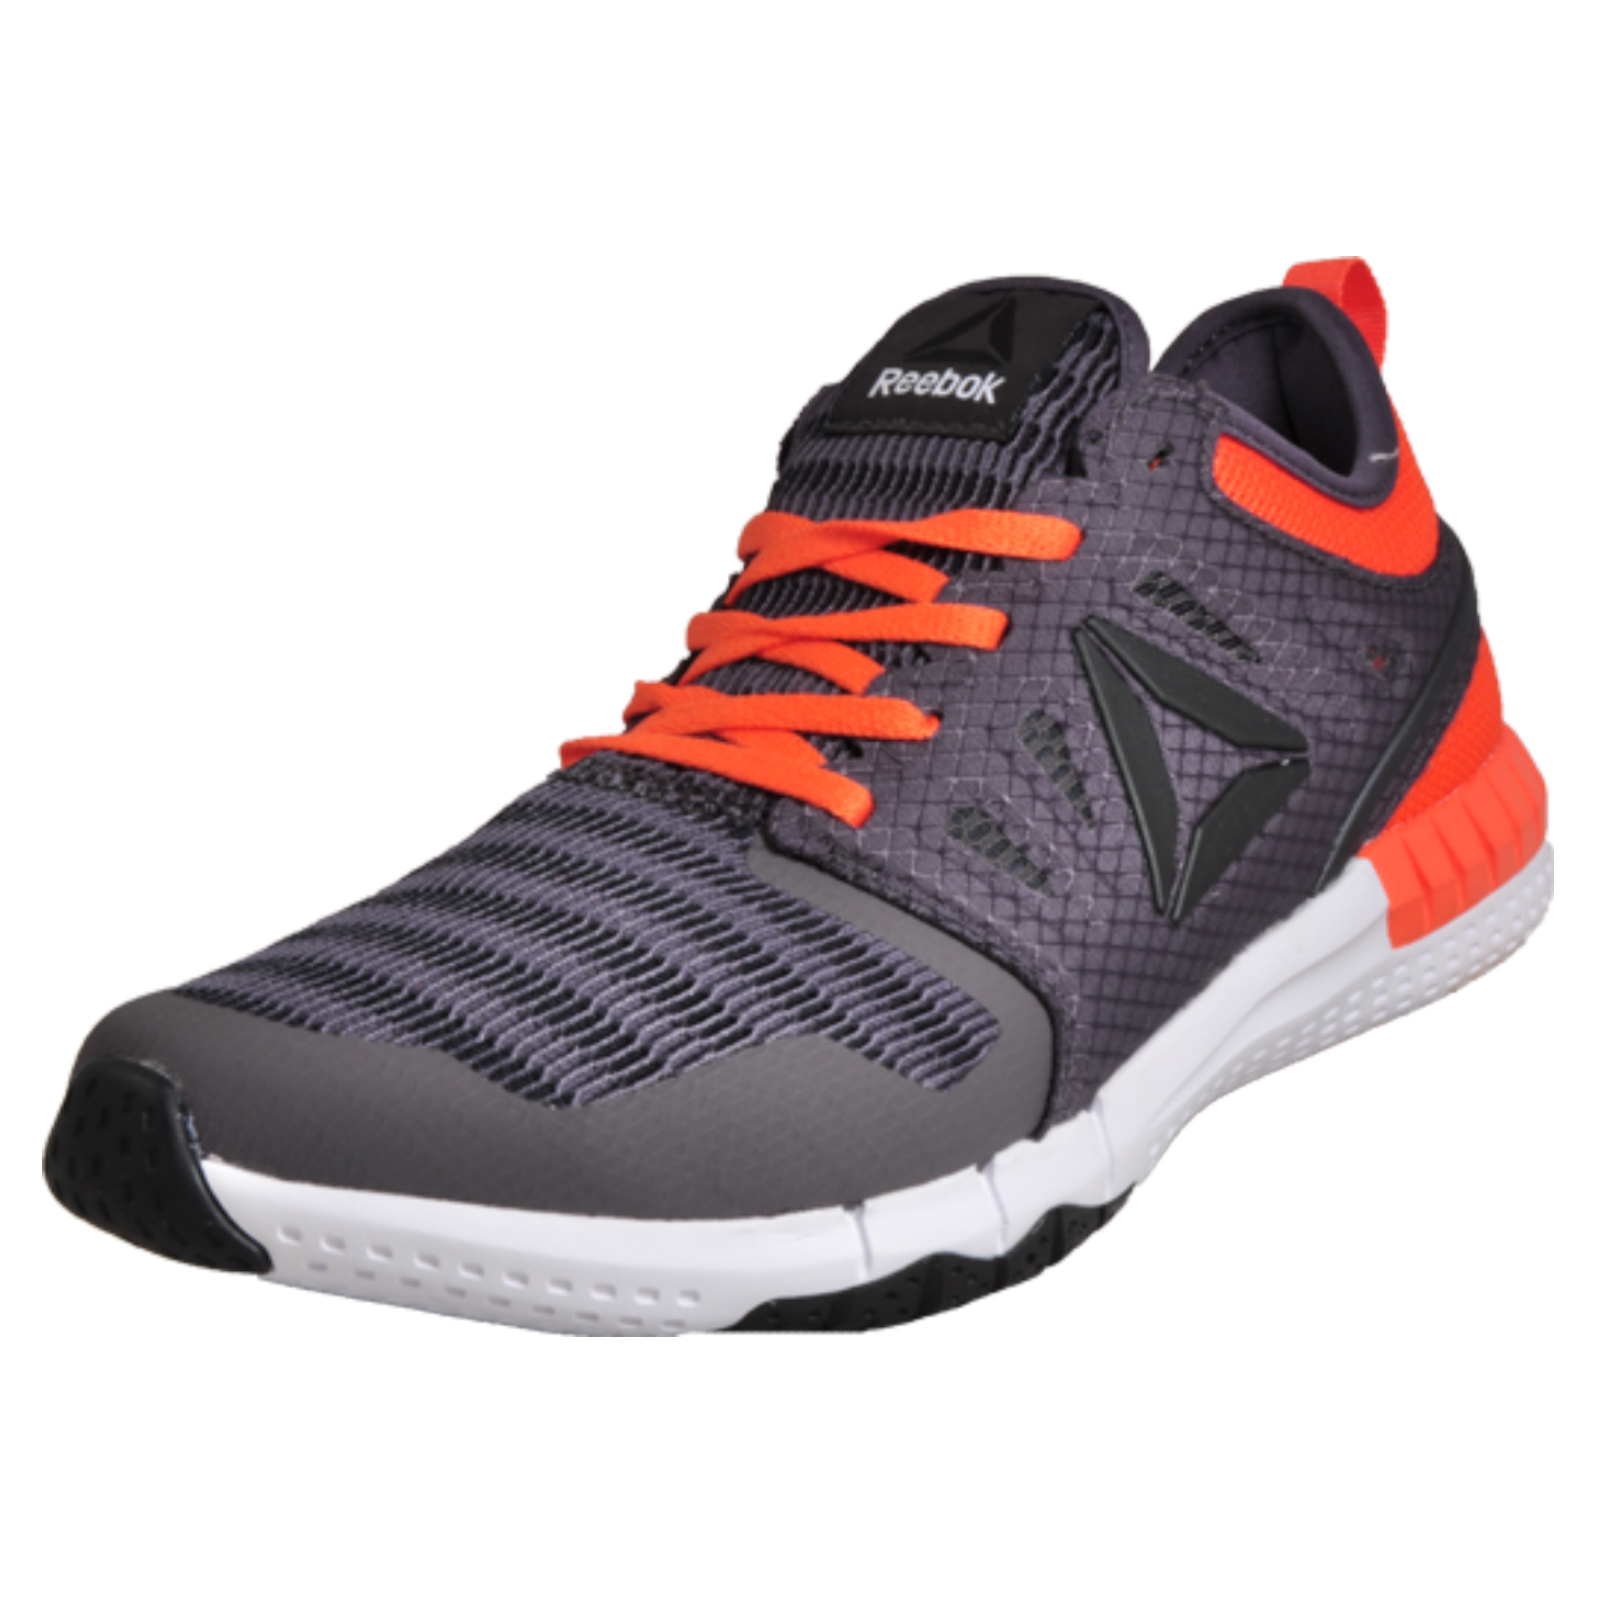 ea2683ab6ac1 Details about Reebok Z Print 3D Womens Running Shoes Fitness Gym Trainers  Grey